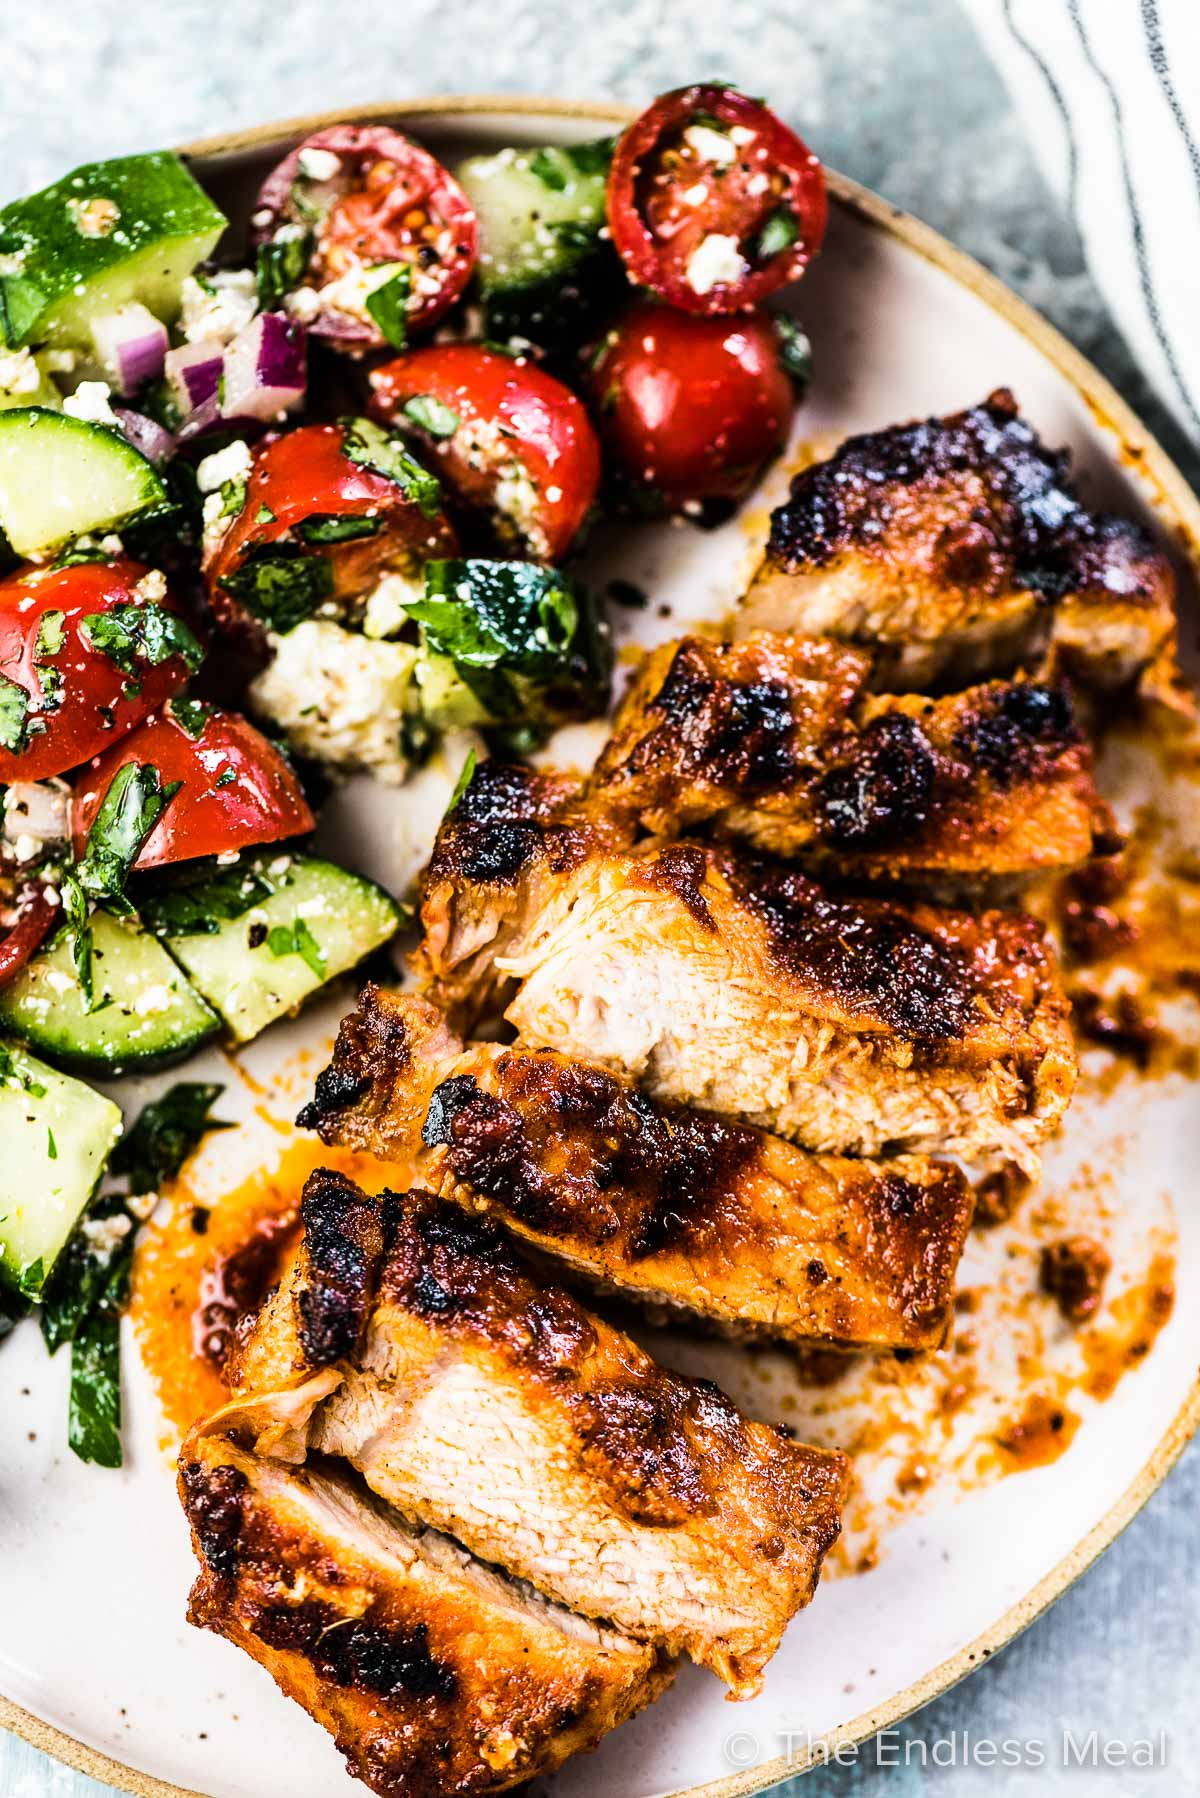 Sliced barbecue pork chops on a dinner plate with a side of tomato cucumber salad.